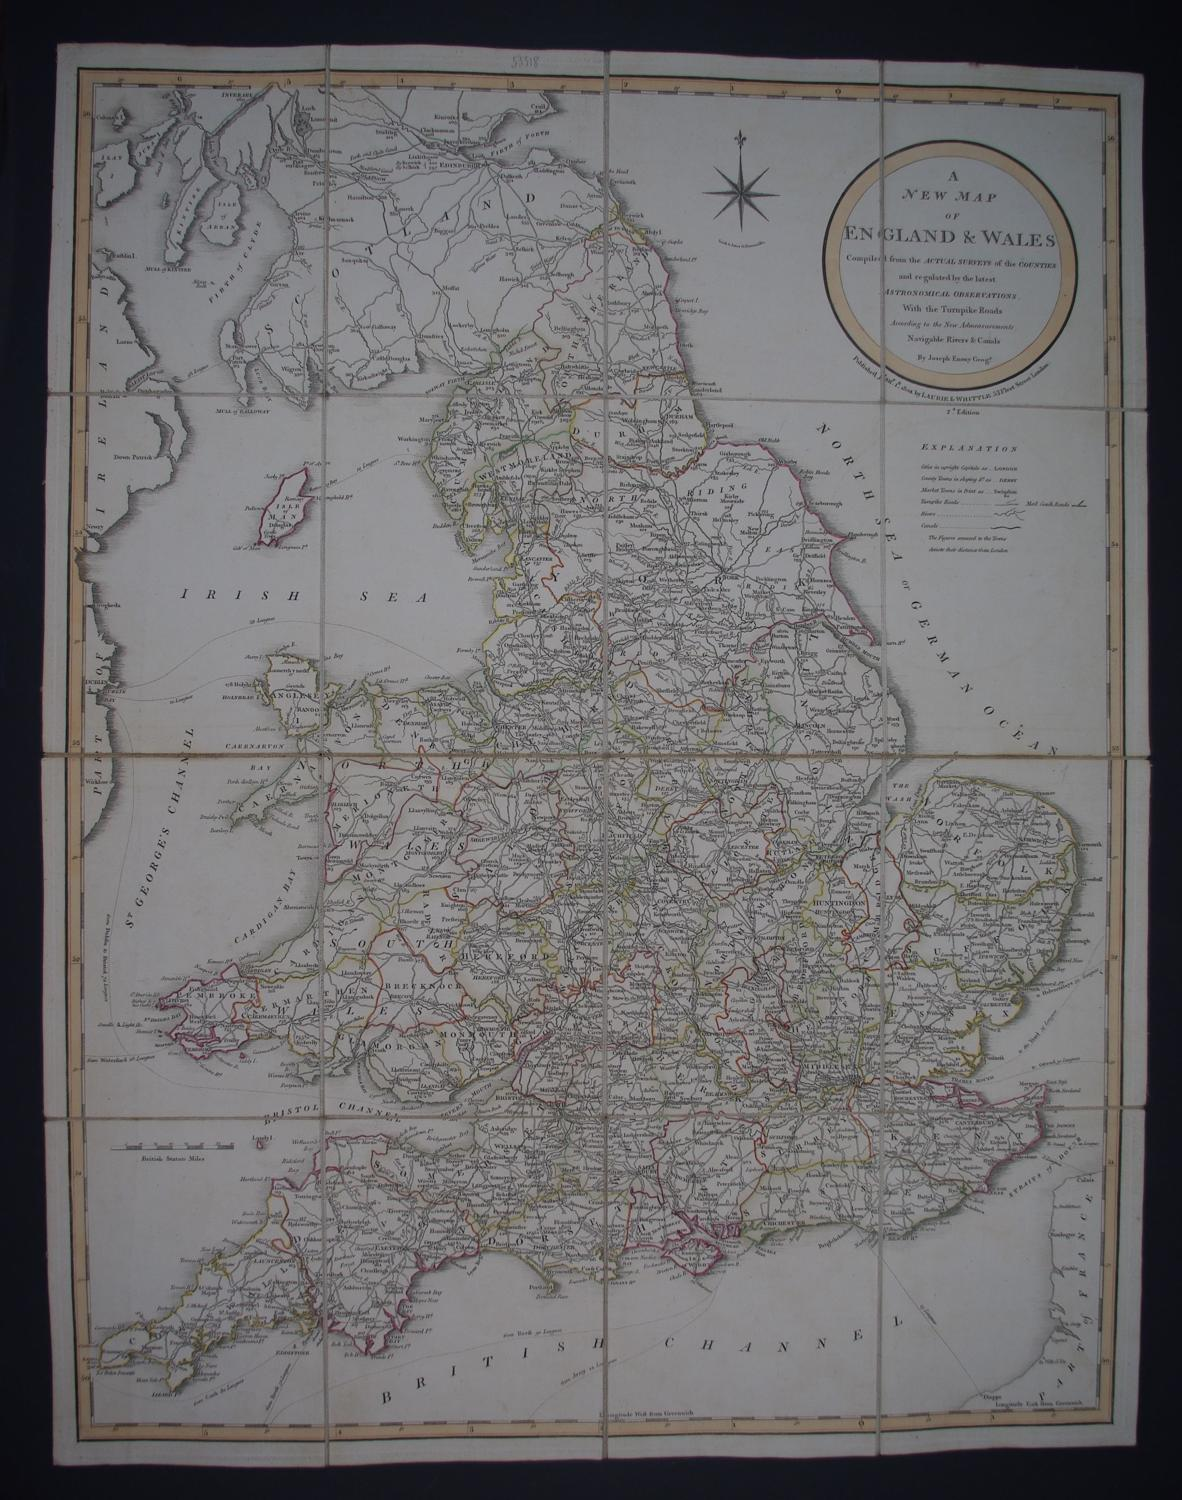 A New Map of England & Wales, Compiled from the Actual Surveys of the by Richard Laurie